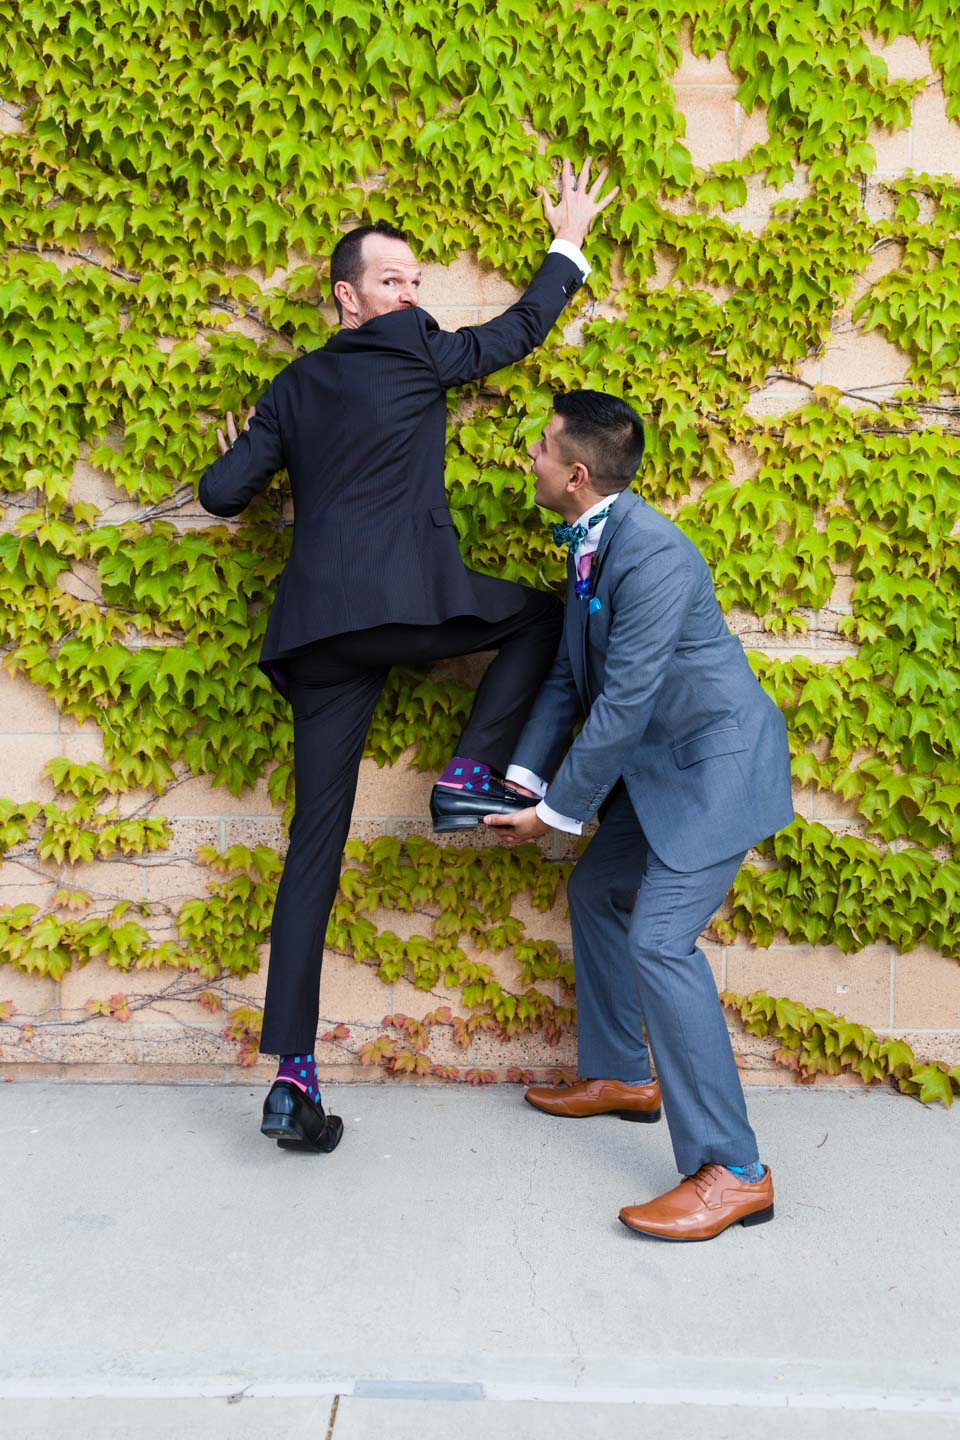 Grooms decide to elope or just have fun with portraits